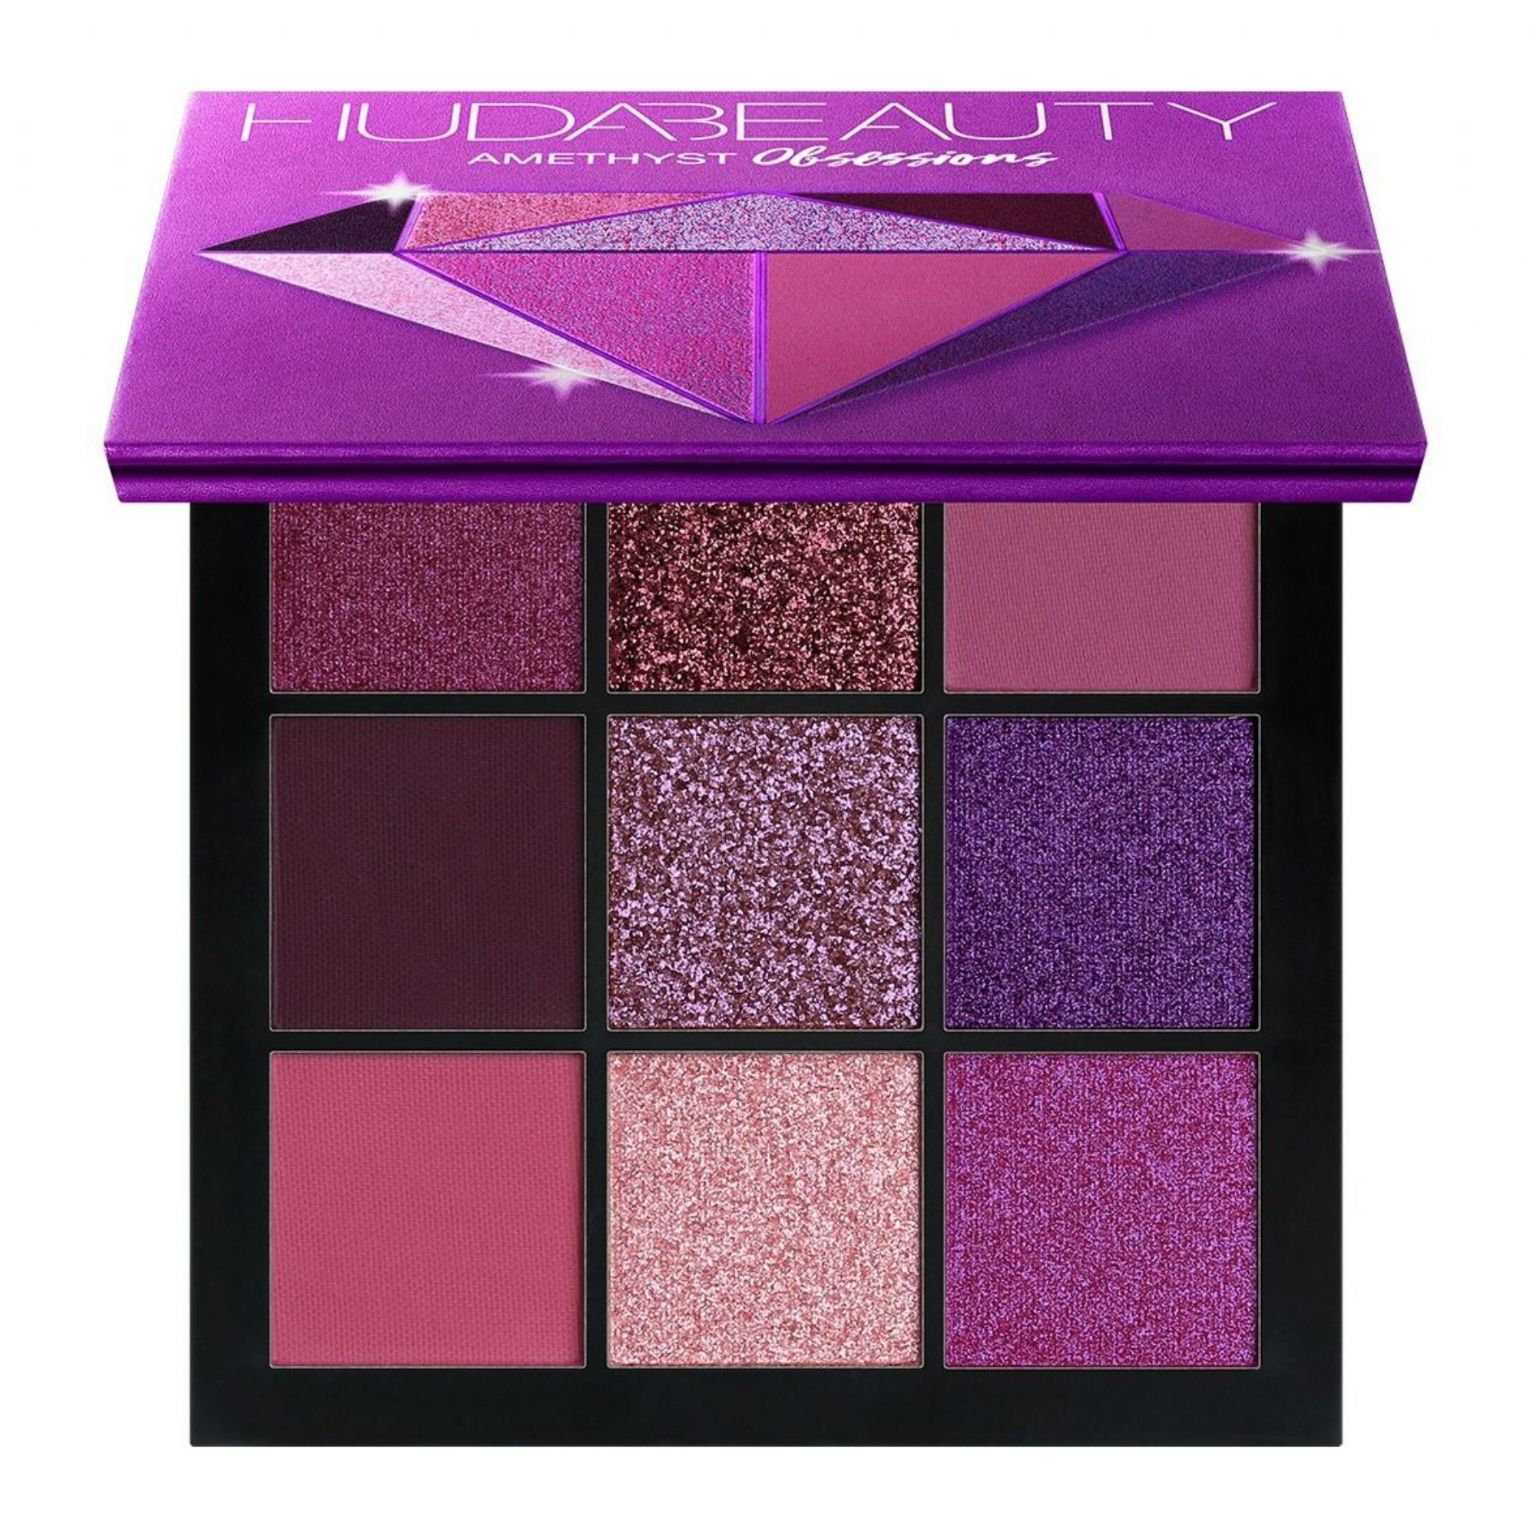 Obsessions Palette - Amethyst